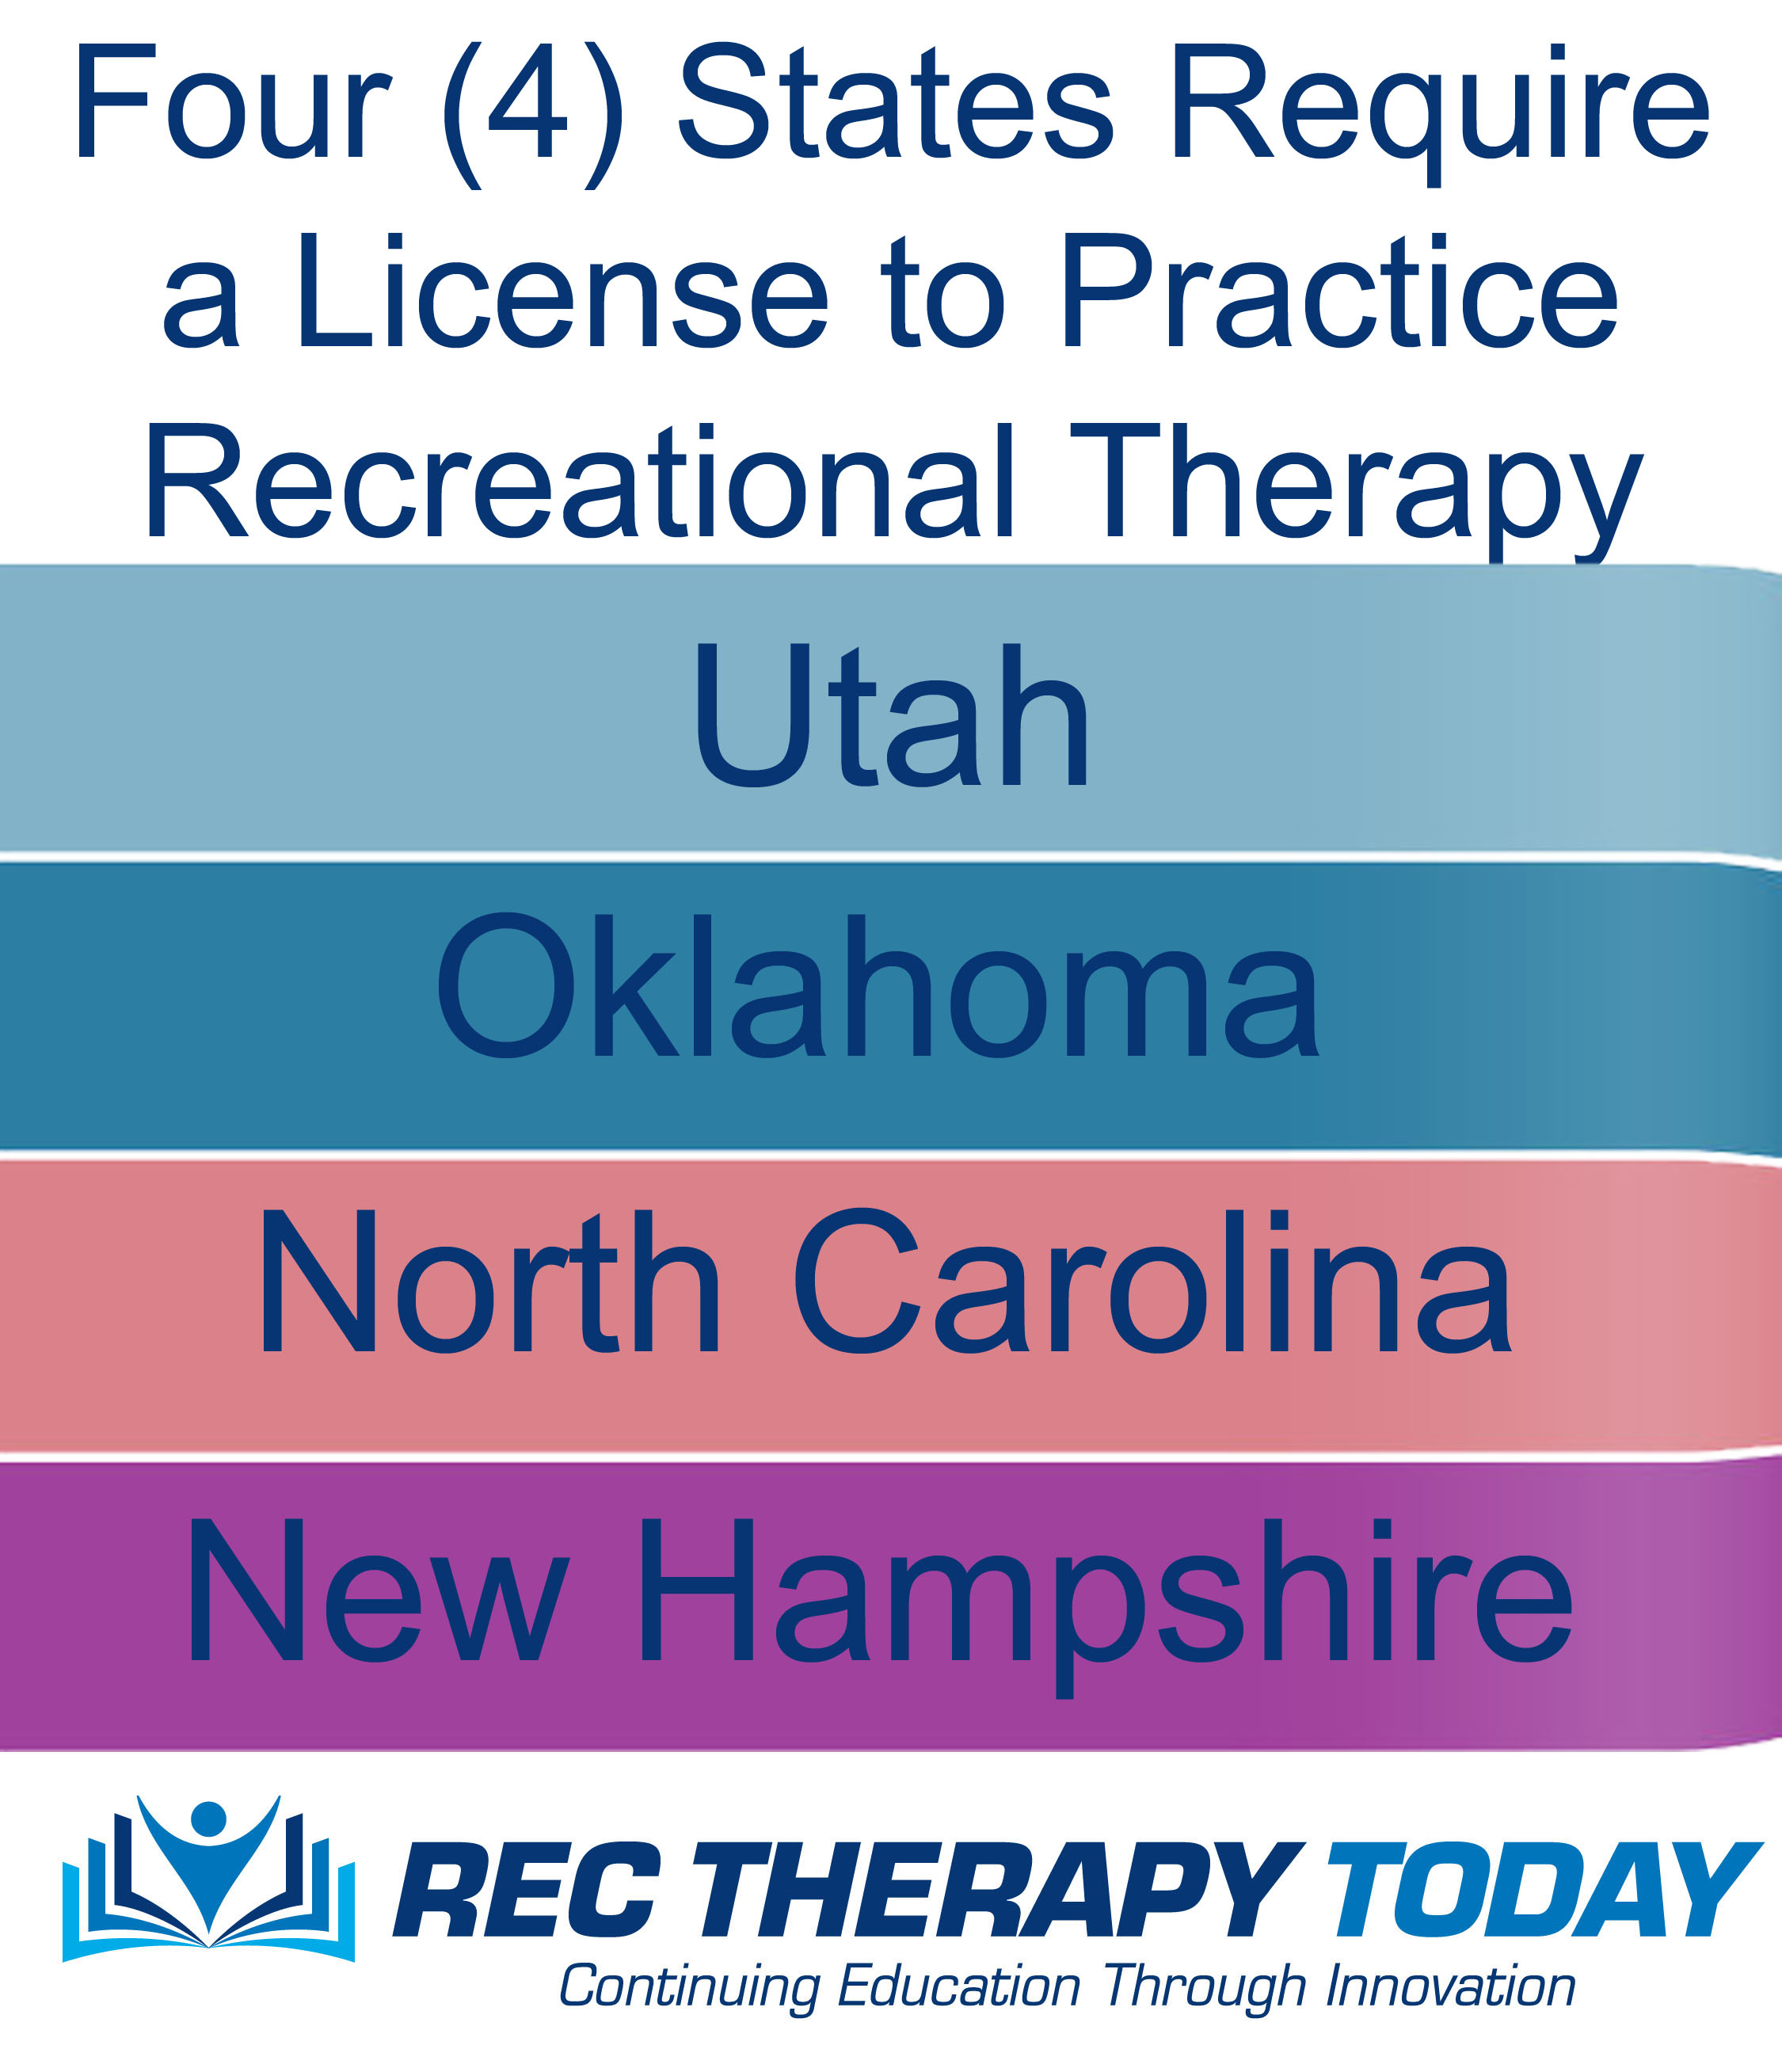 Recreational Therapy License